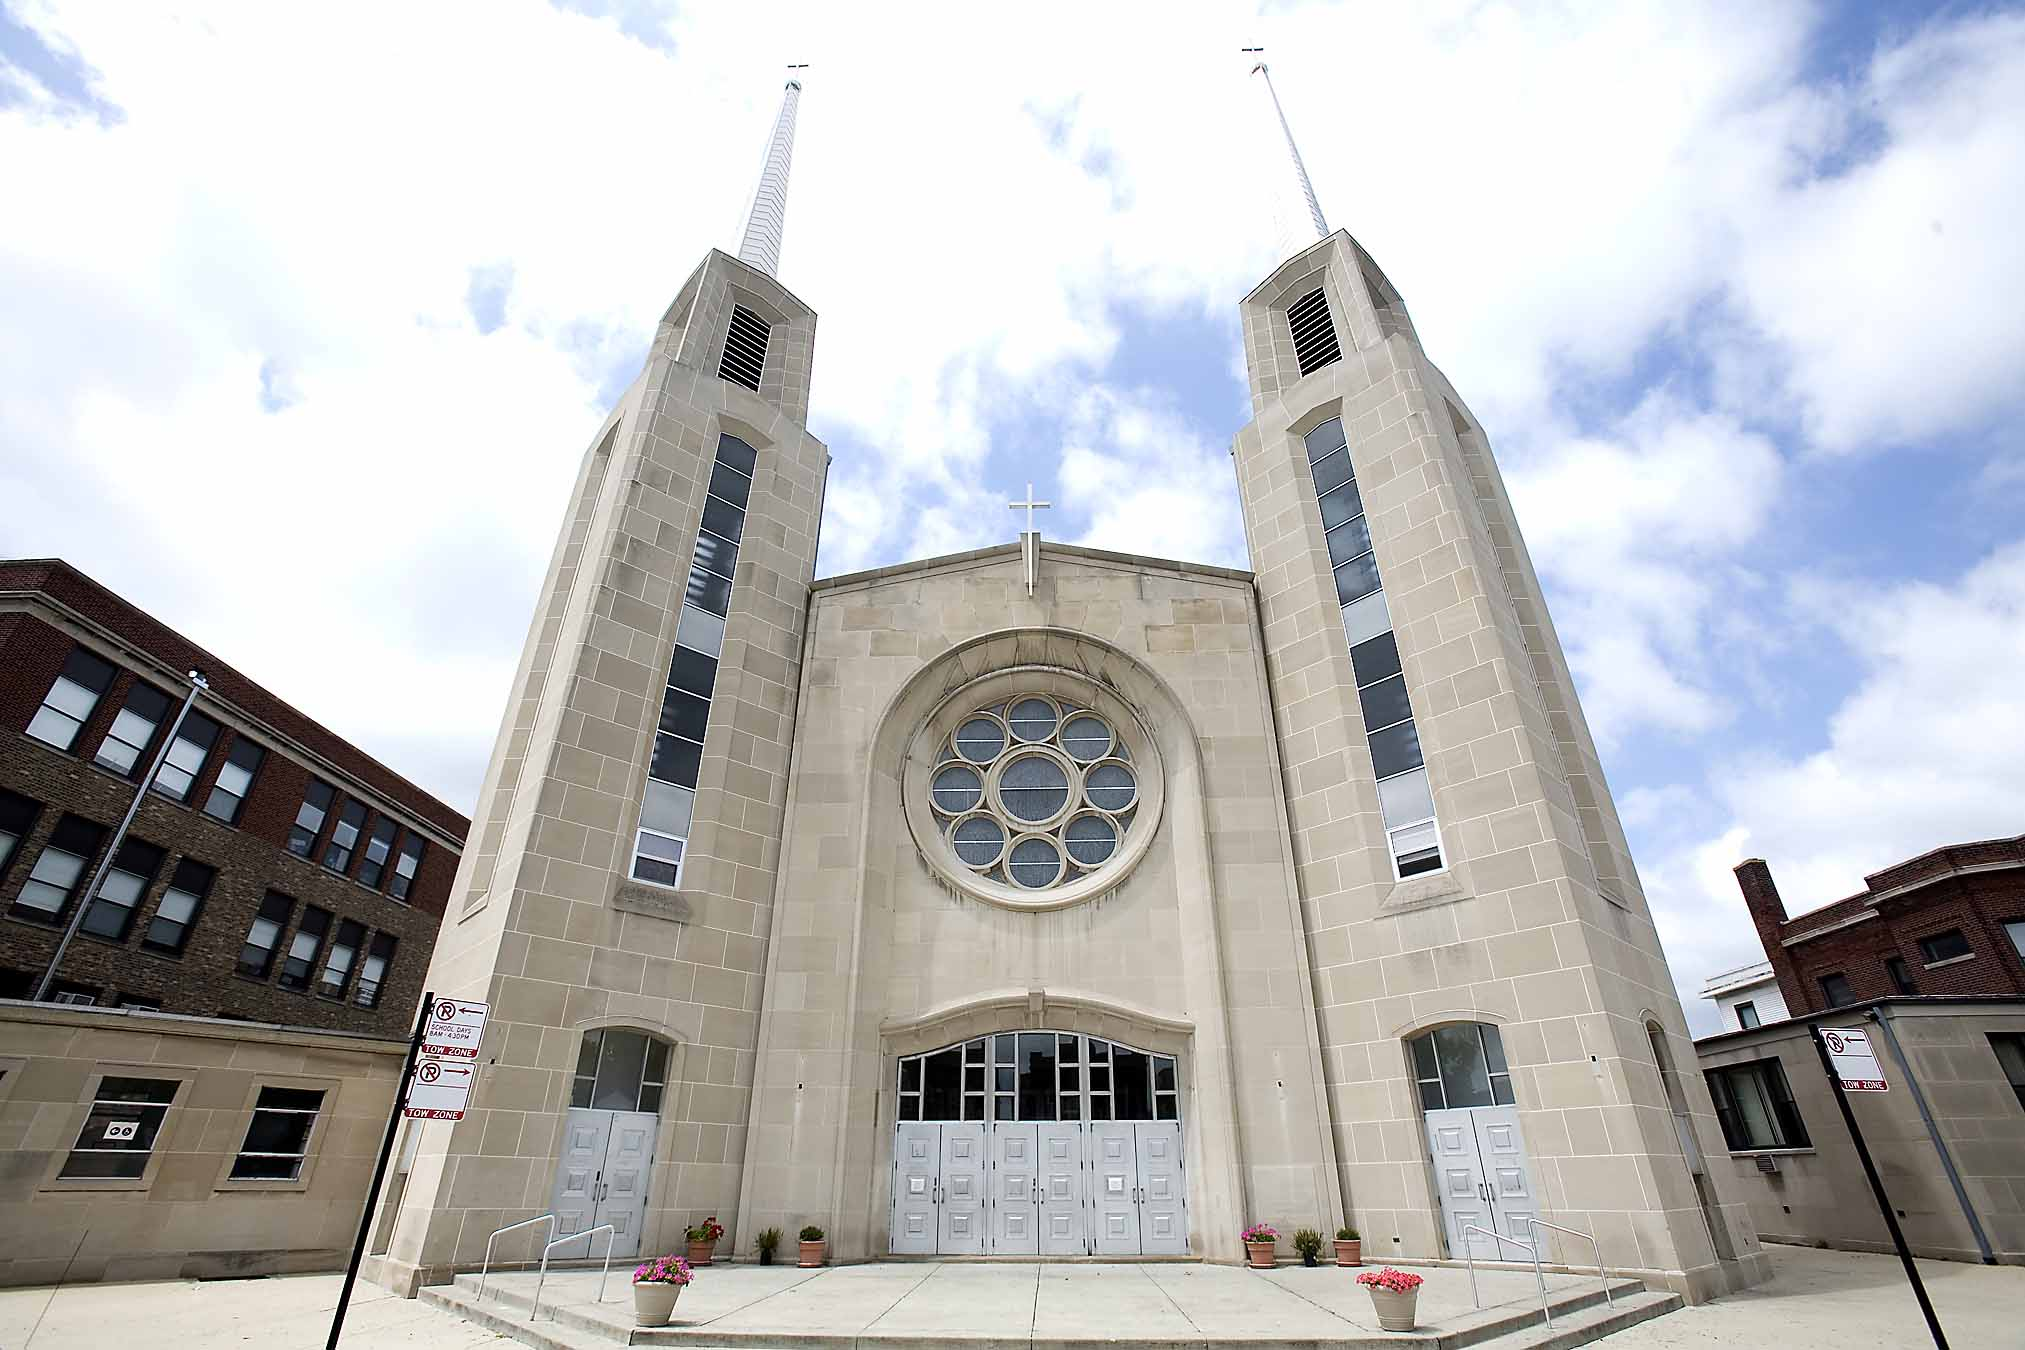 Our Lady of Mercy Catholic church, 4432 N. Troy St., in Albany Park, has soaring twin spires and a stunning gold dome.